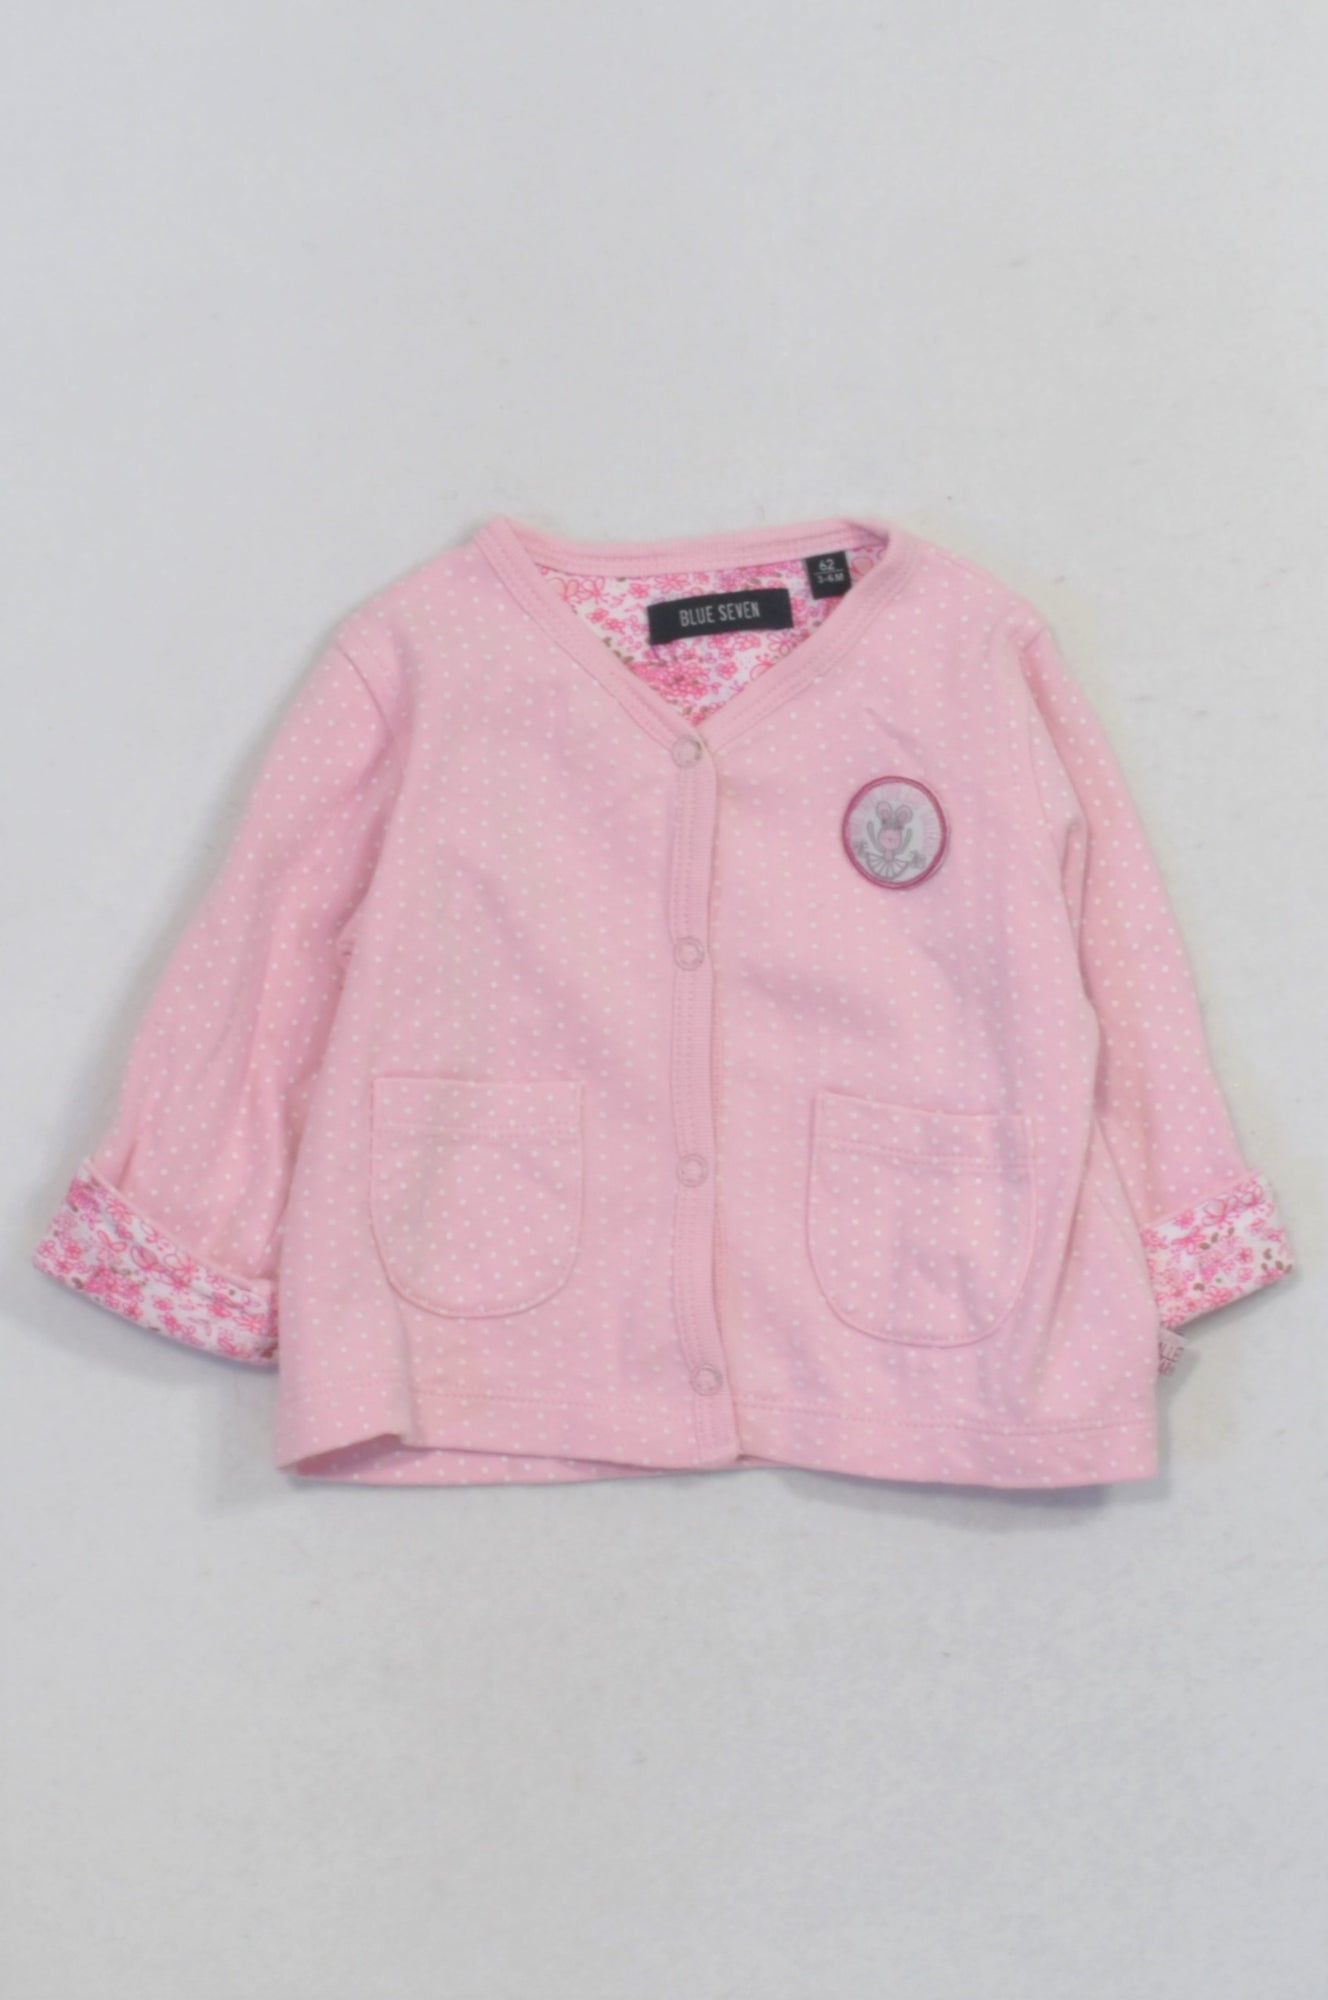 Blue Seven Pink Dotty Ballerina Snap Cardigan Girls 3-6 months